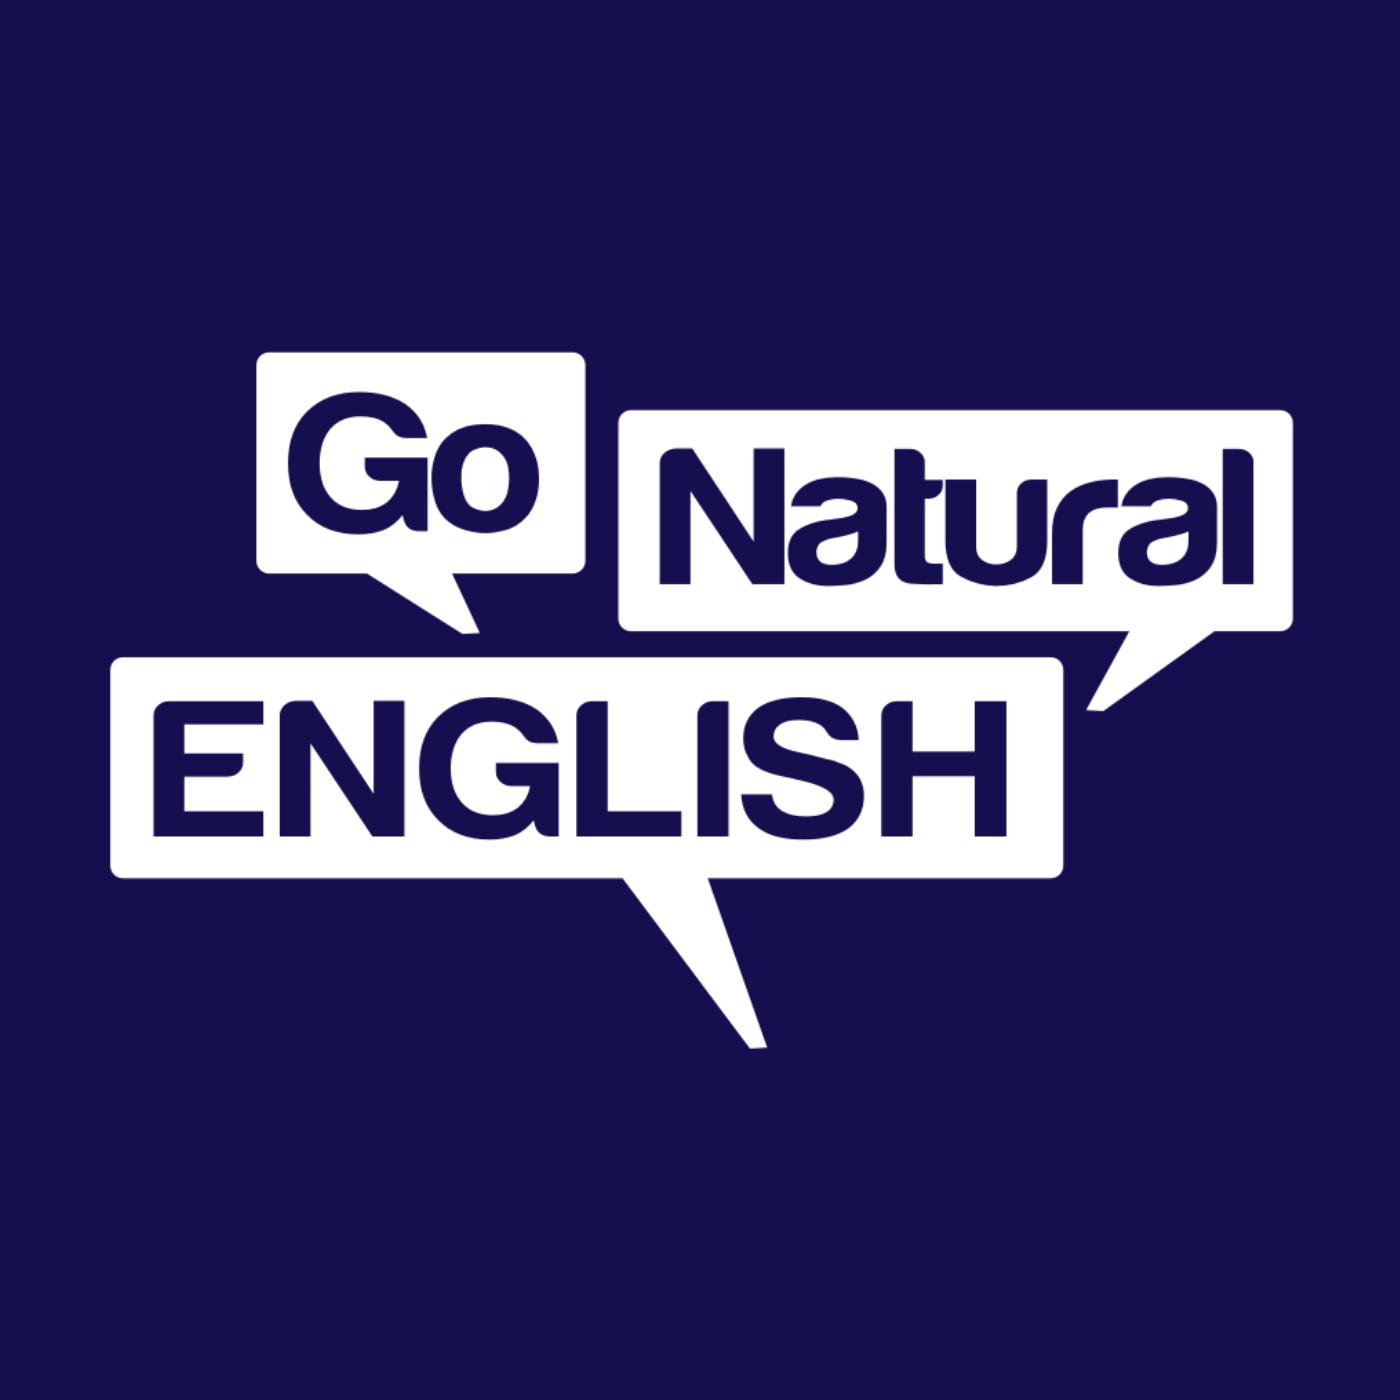 How to Learn with the Complete Go Natural English Course